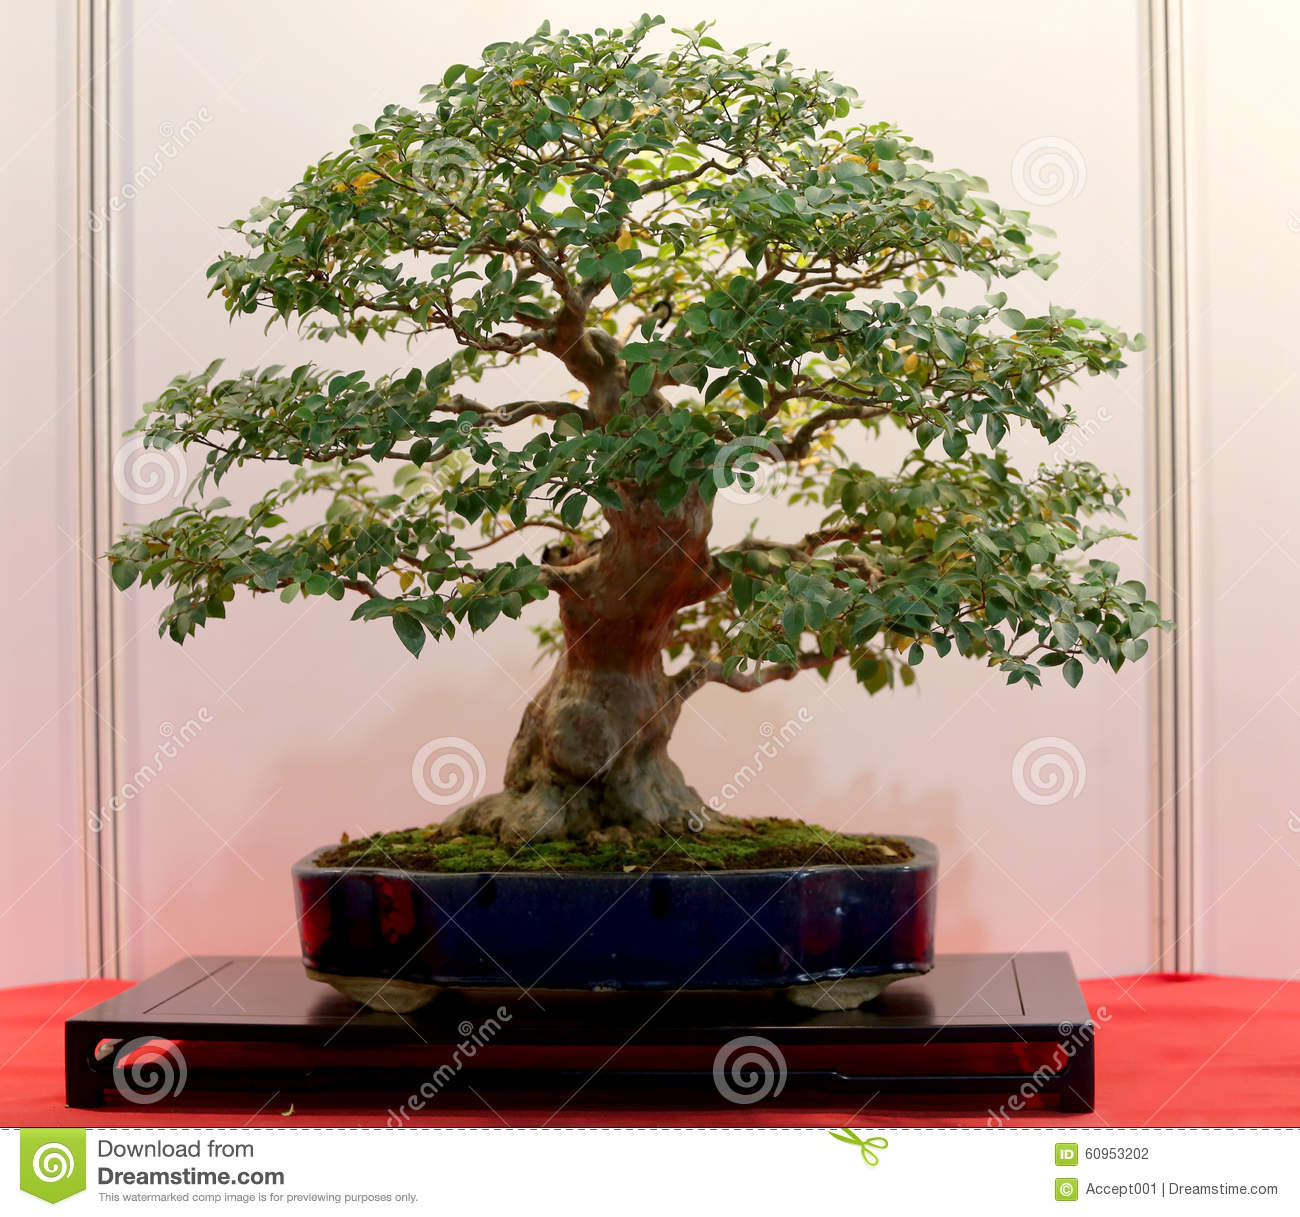 Artistic Potted Bonsai Tree In Flower Pot Stock Photo Image Of